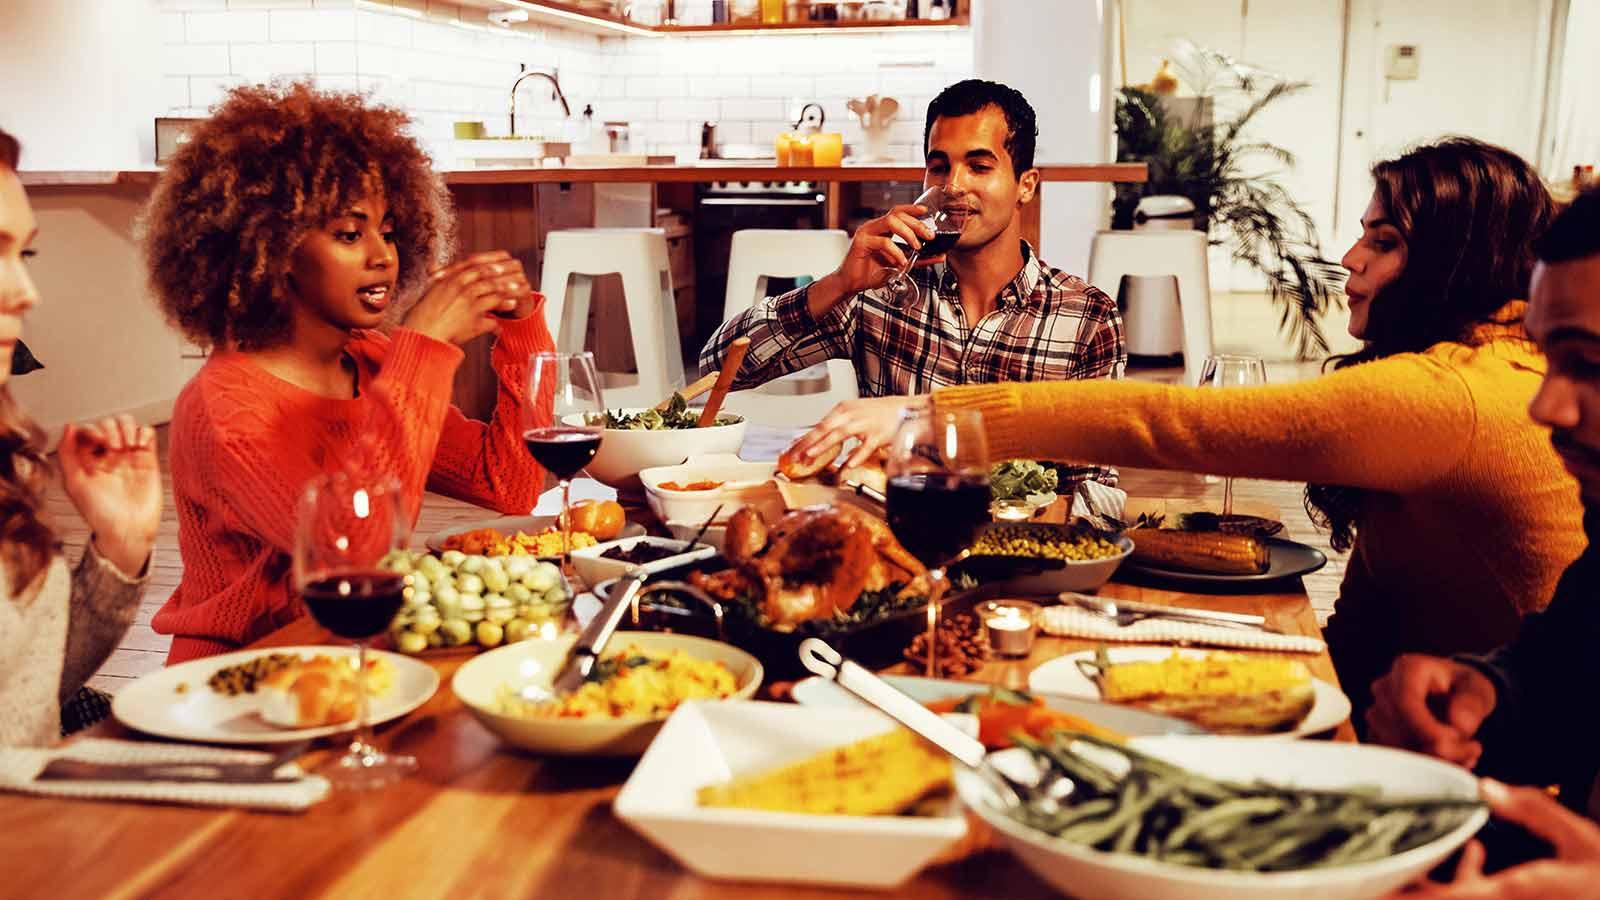 A group of people eating a meal at a kitchen table.